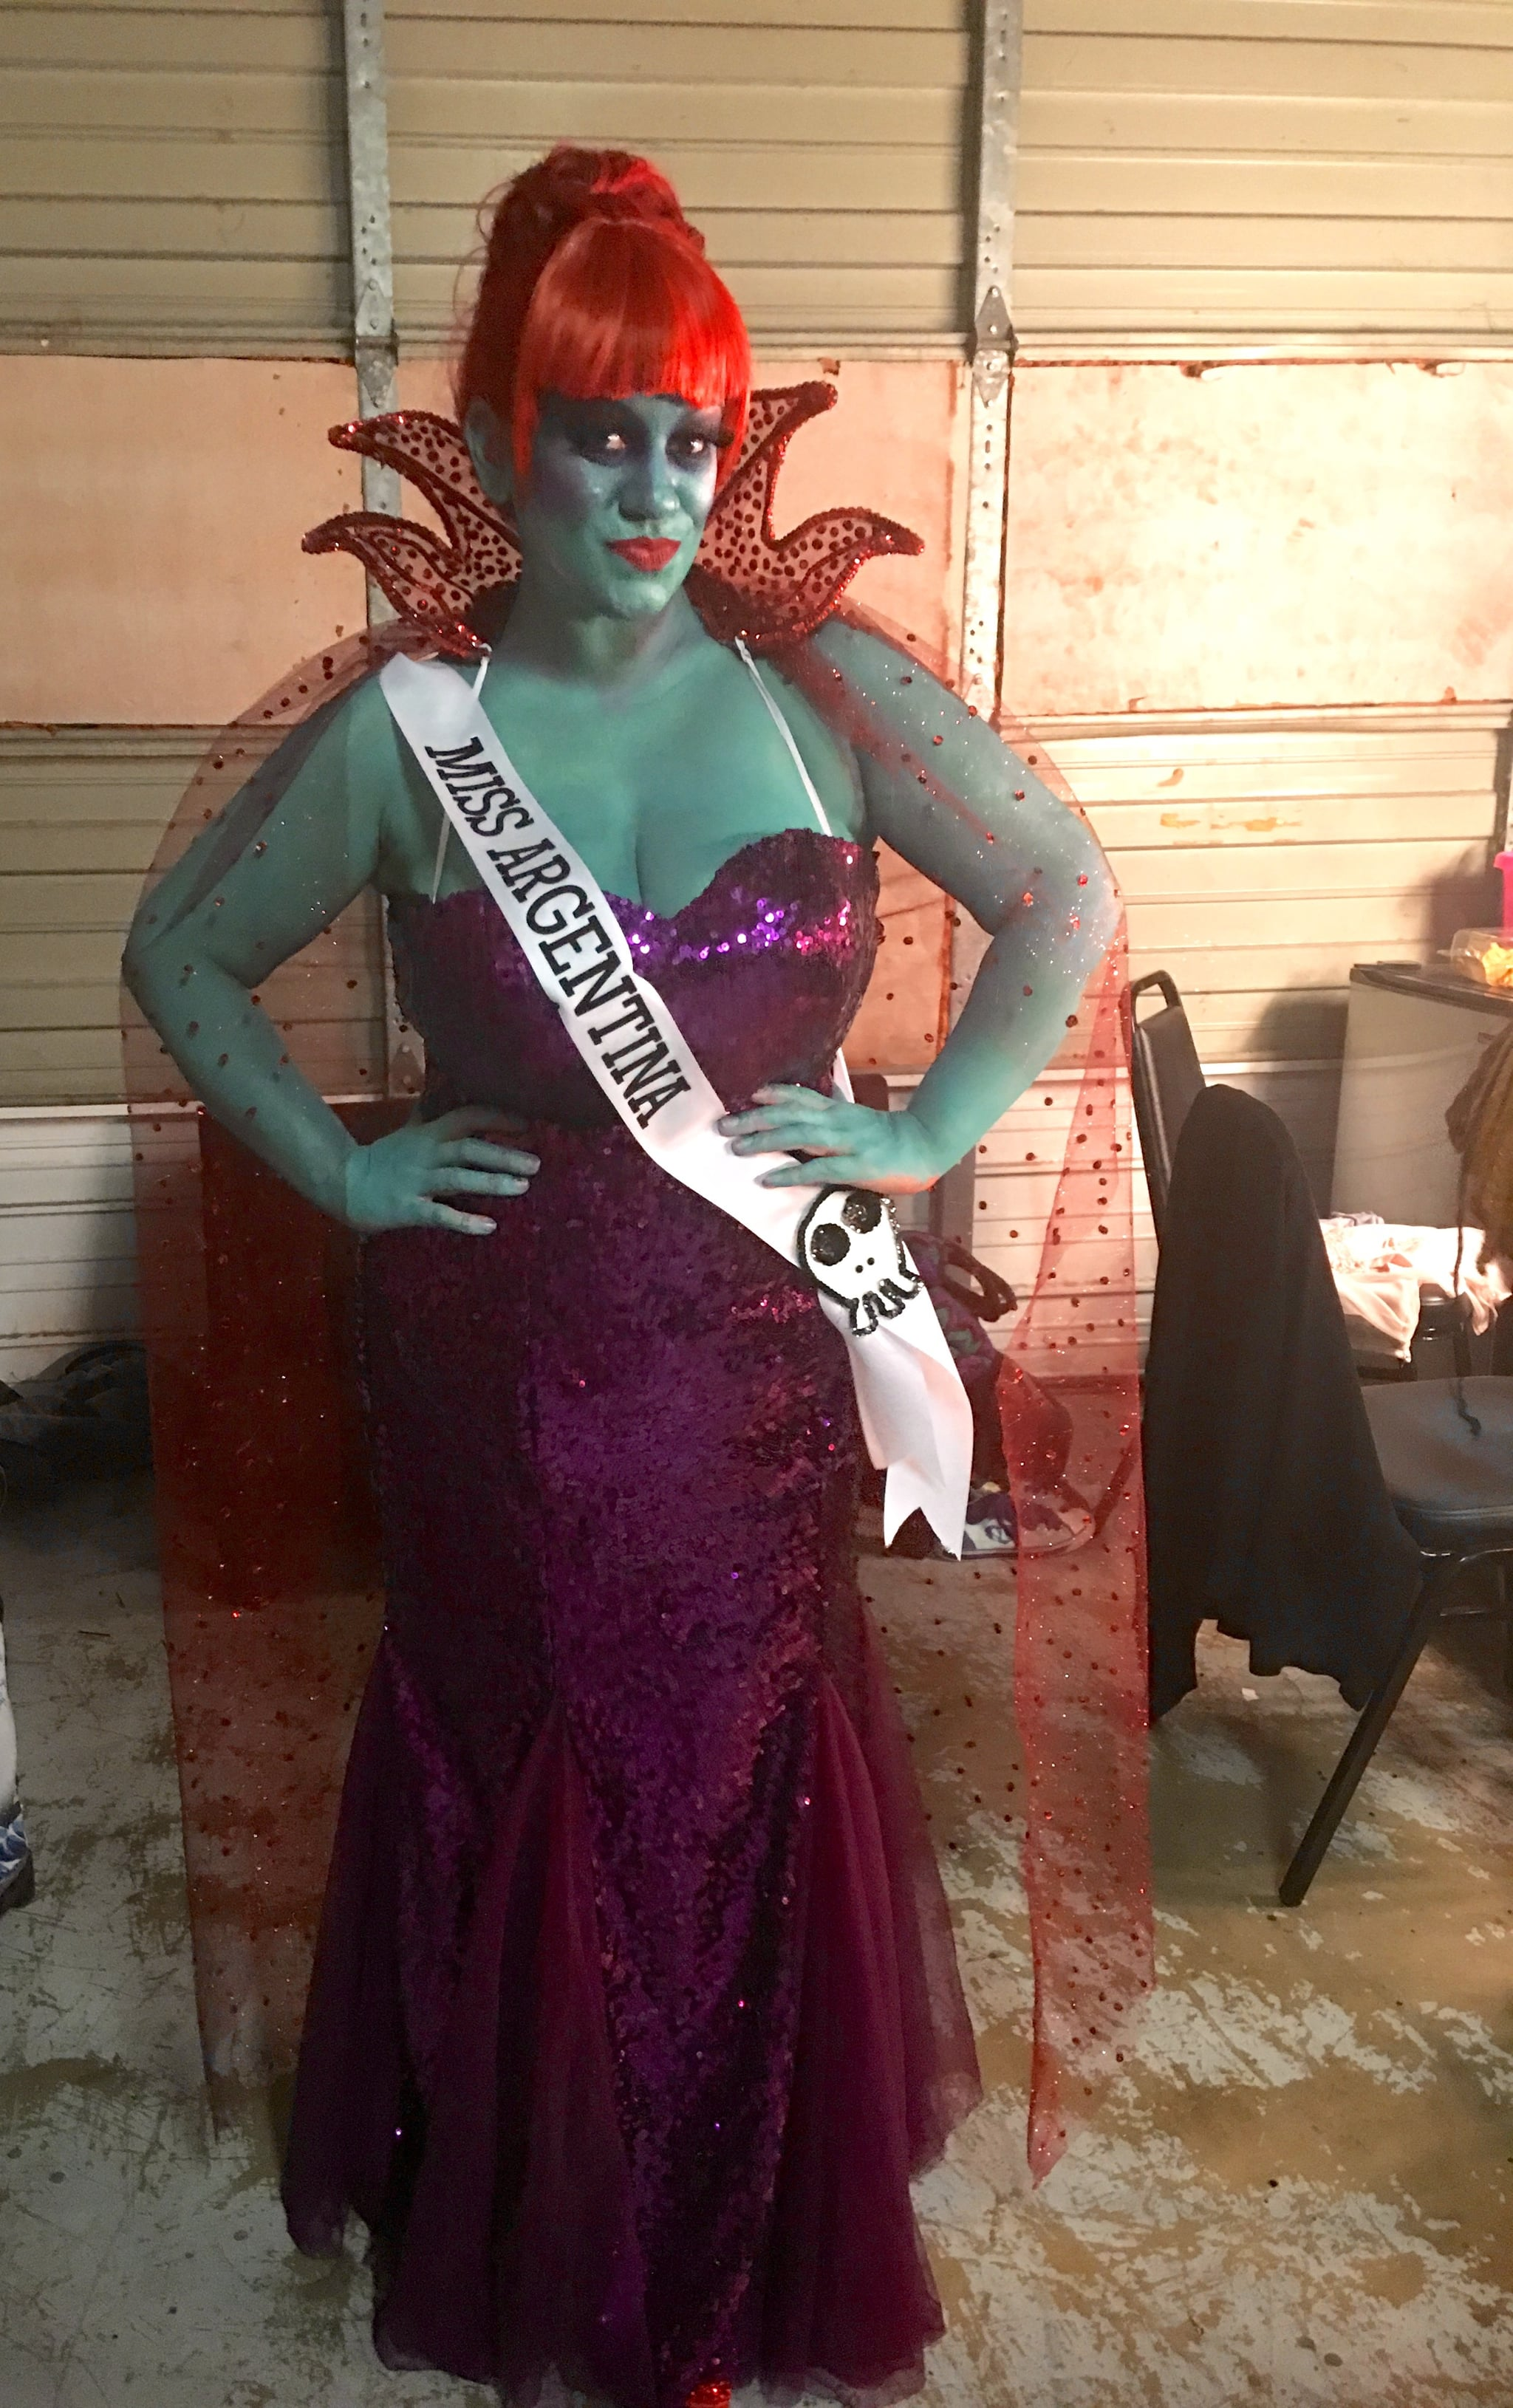 Miss Argentina From Beetlejuice Tim Burton Fans These 17 Diy Halloween Costumes Are A Nightmare Come True Popsugar Smart Living Photo 8